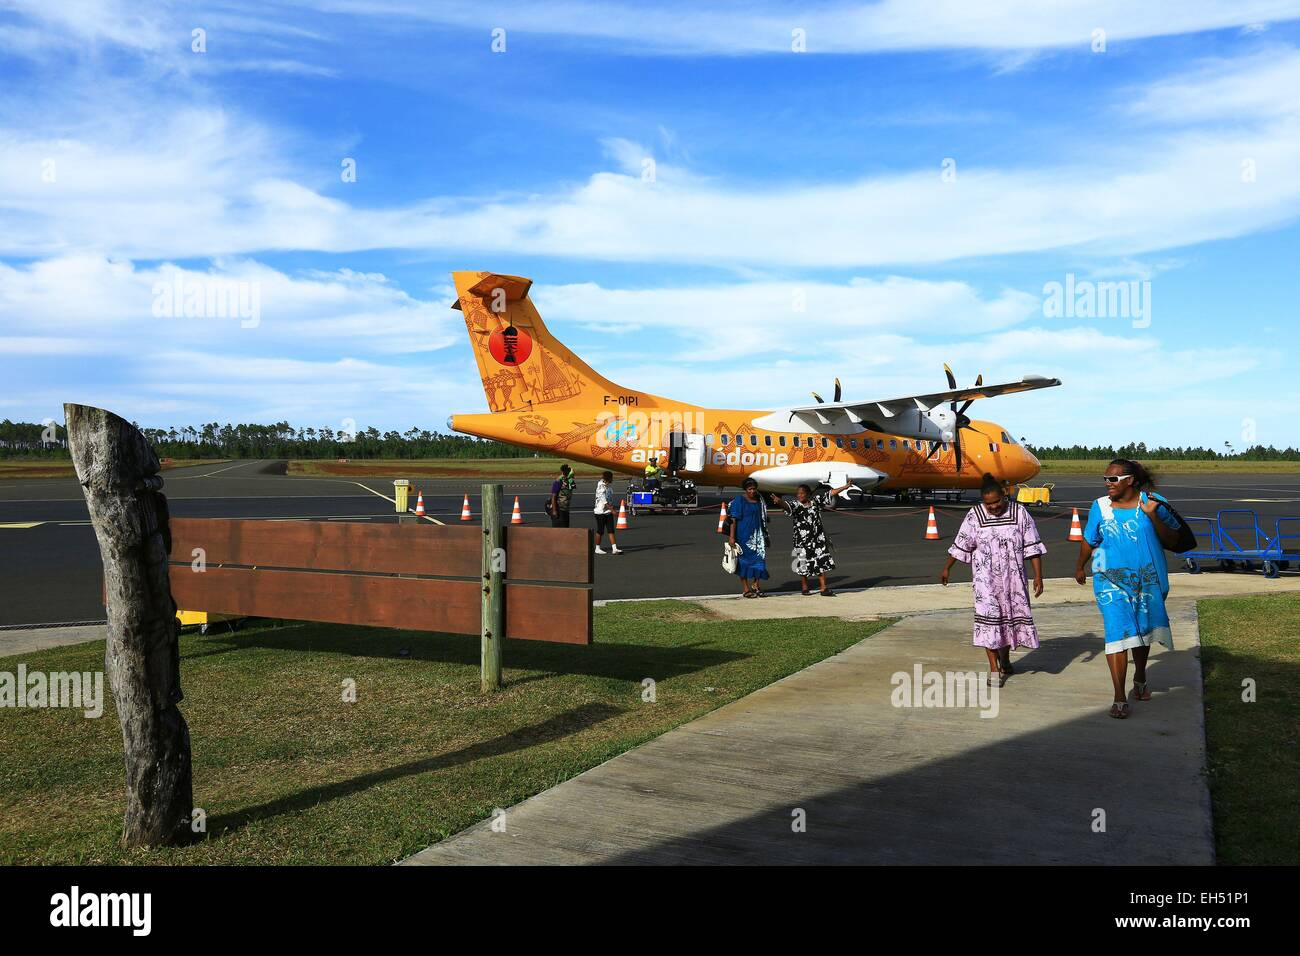 France, New Caledonia, Isle of Pines Airfield Moue - Stock Image